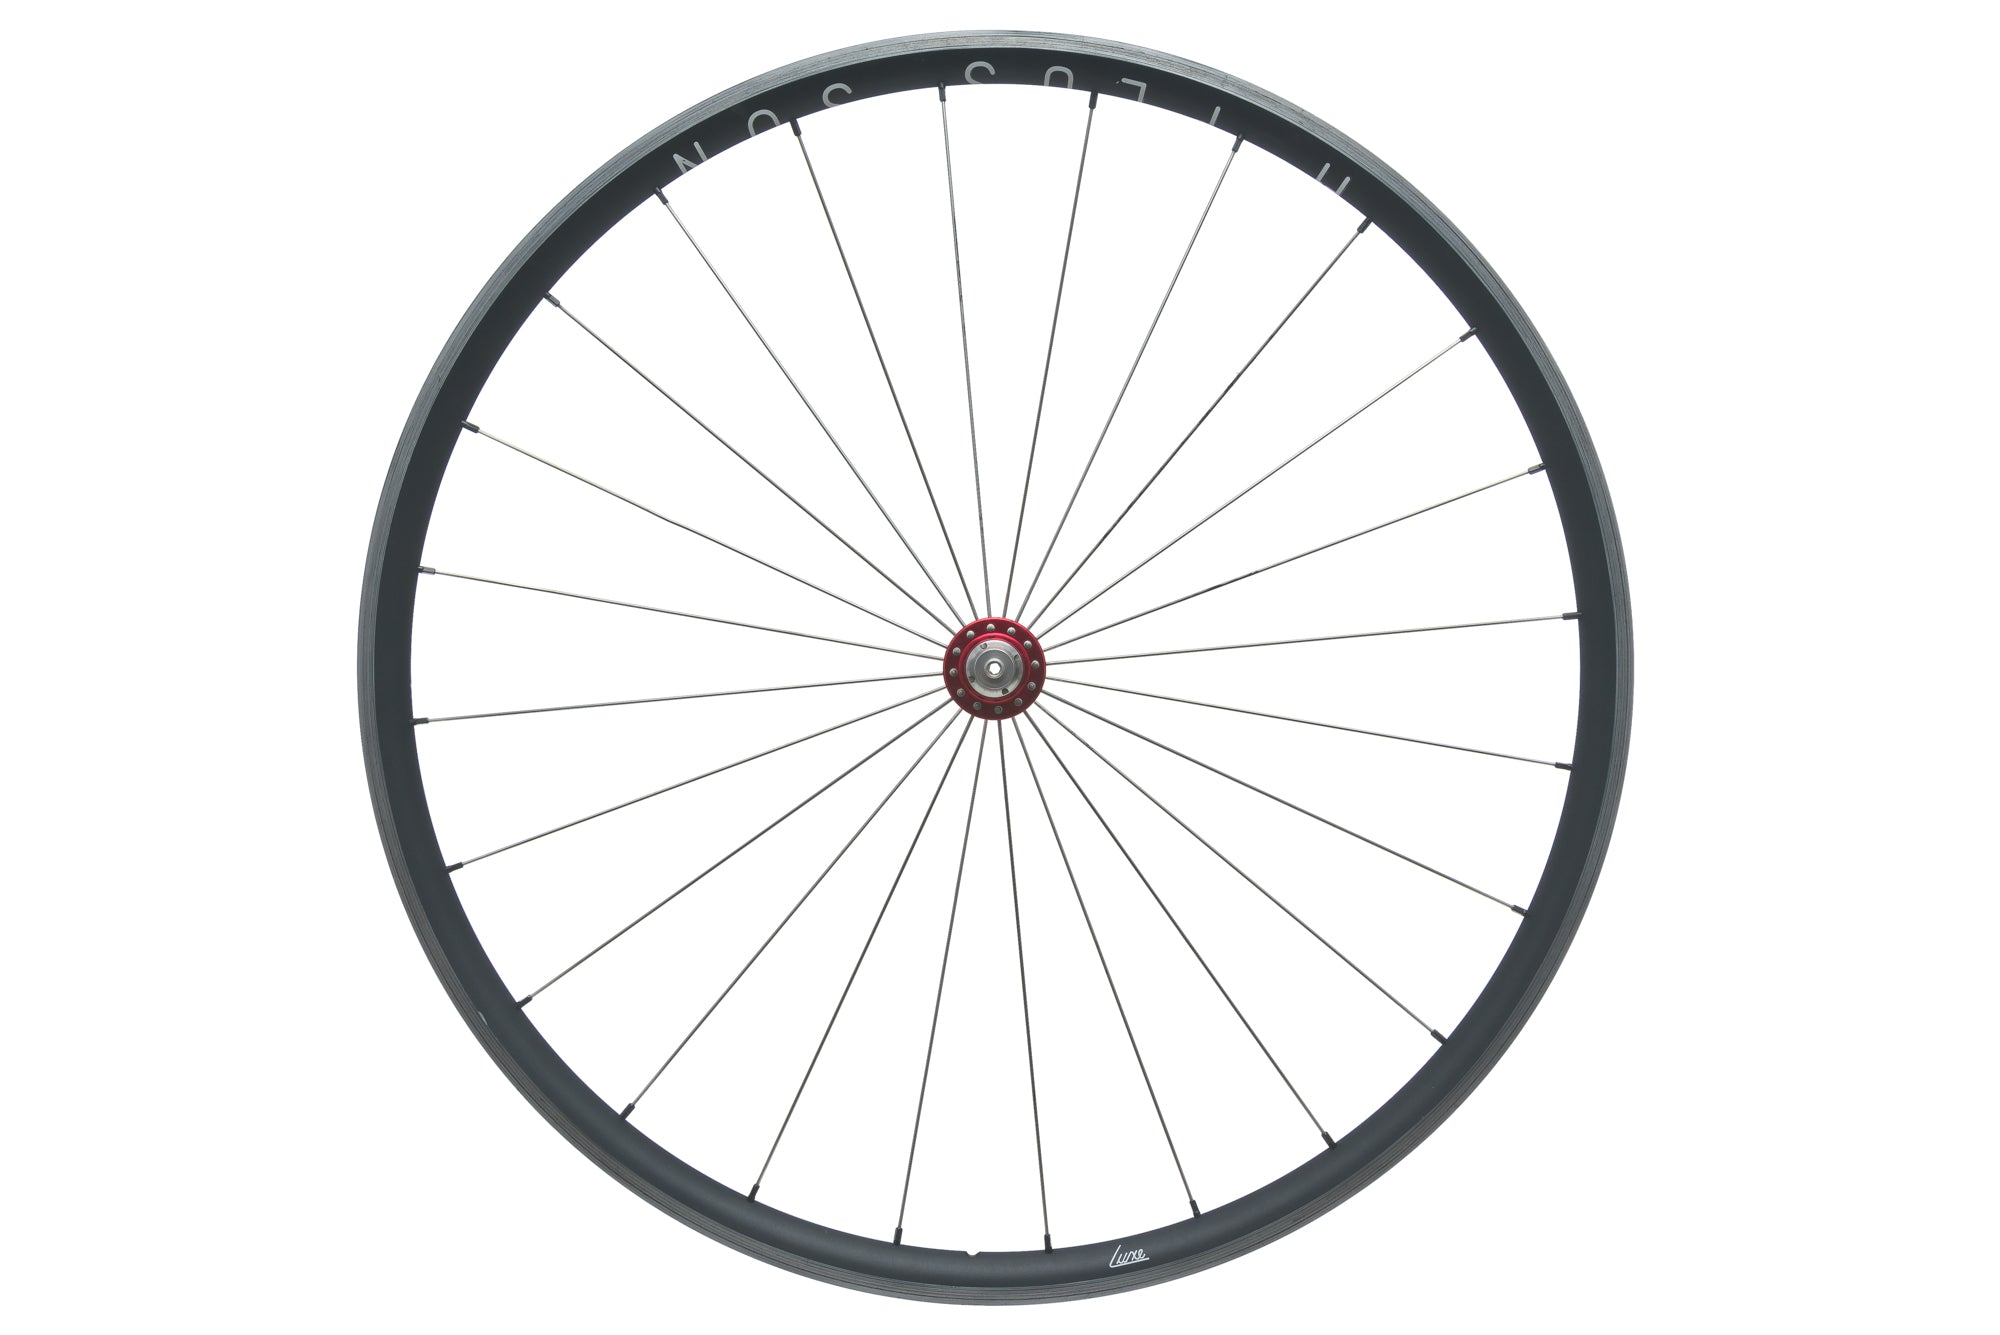 H Plus Son Archetype / Chris King R45 Aluminum Clincher 700c Front Wheel non-drive side